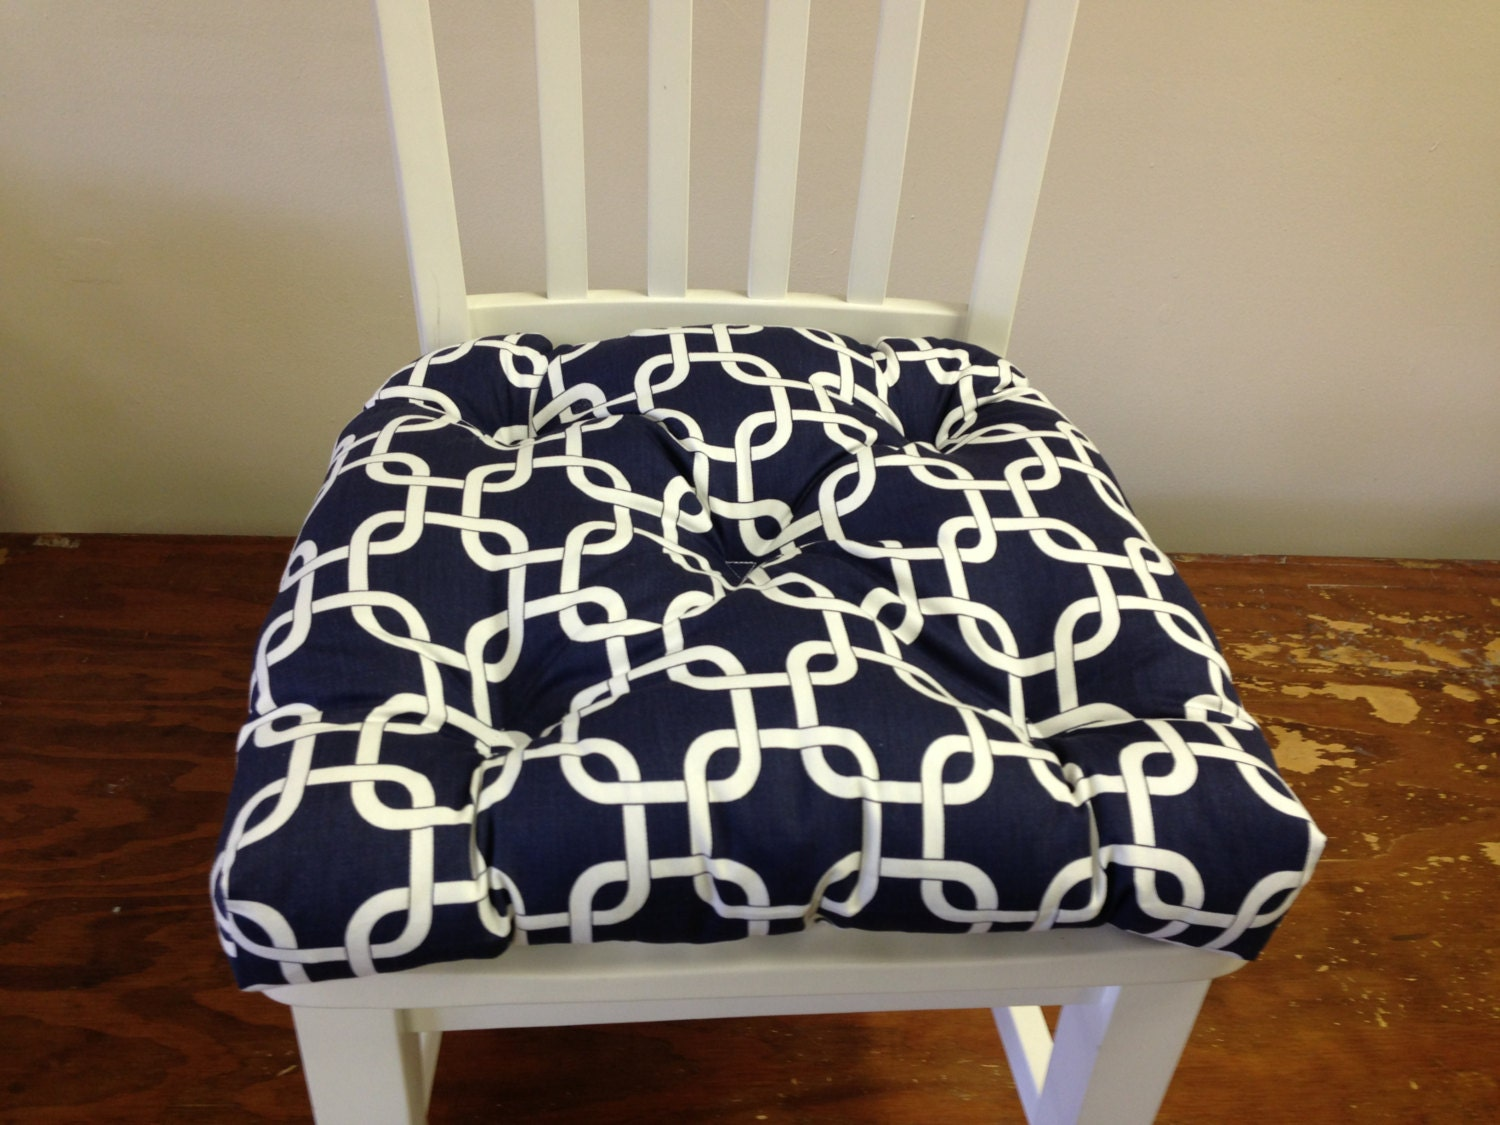 RTS Tufted chair pad seat cushion bar stool cushion gotcha : ilfullxfull892670677bokz from www.etsy.com size 1500 x 1125 jpeg 273kB